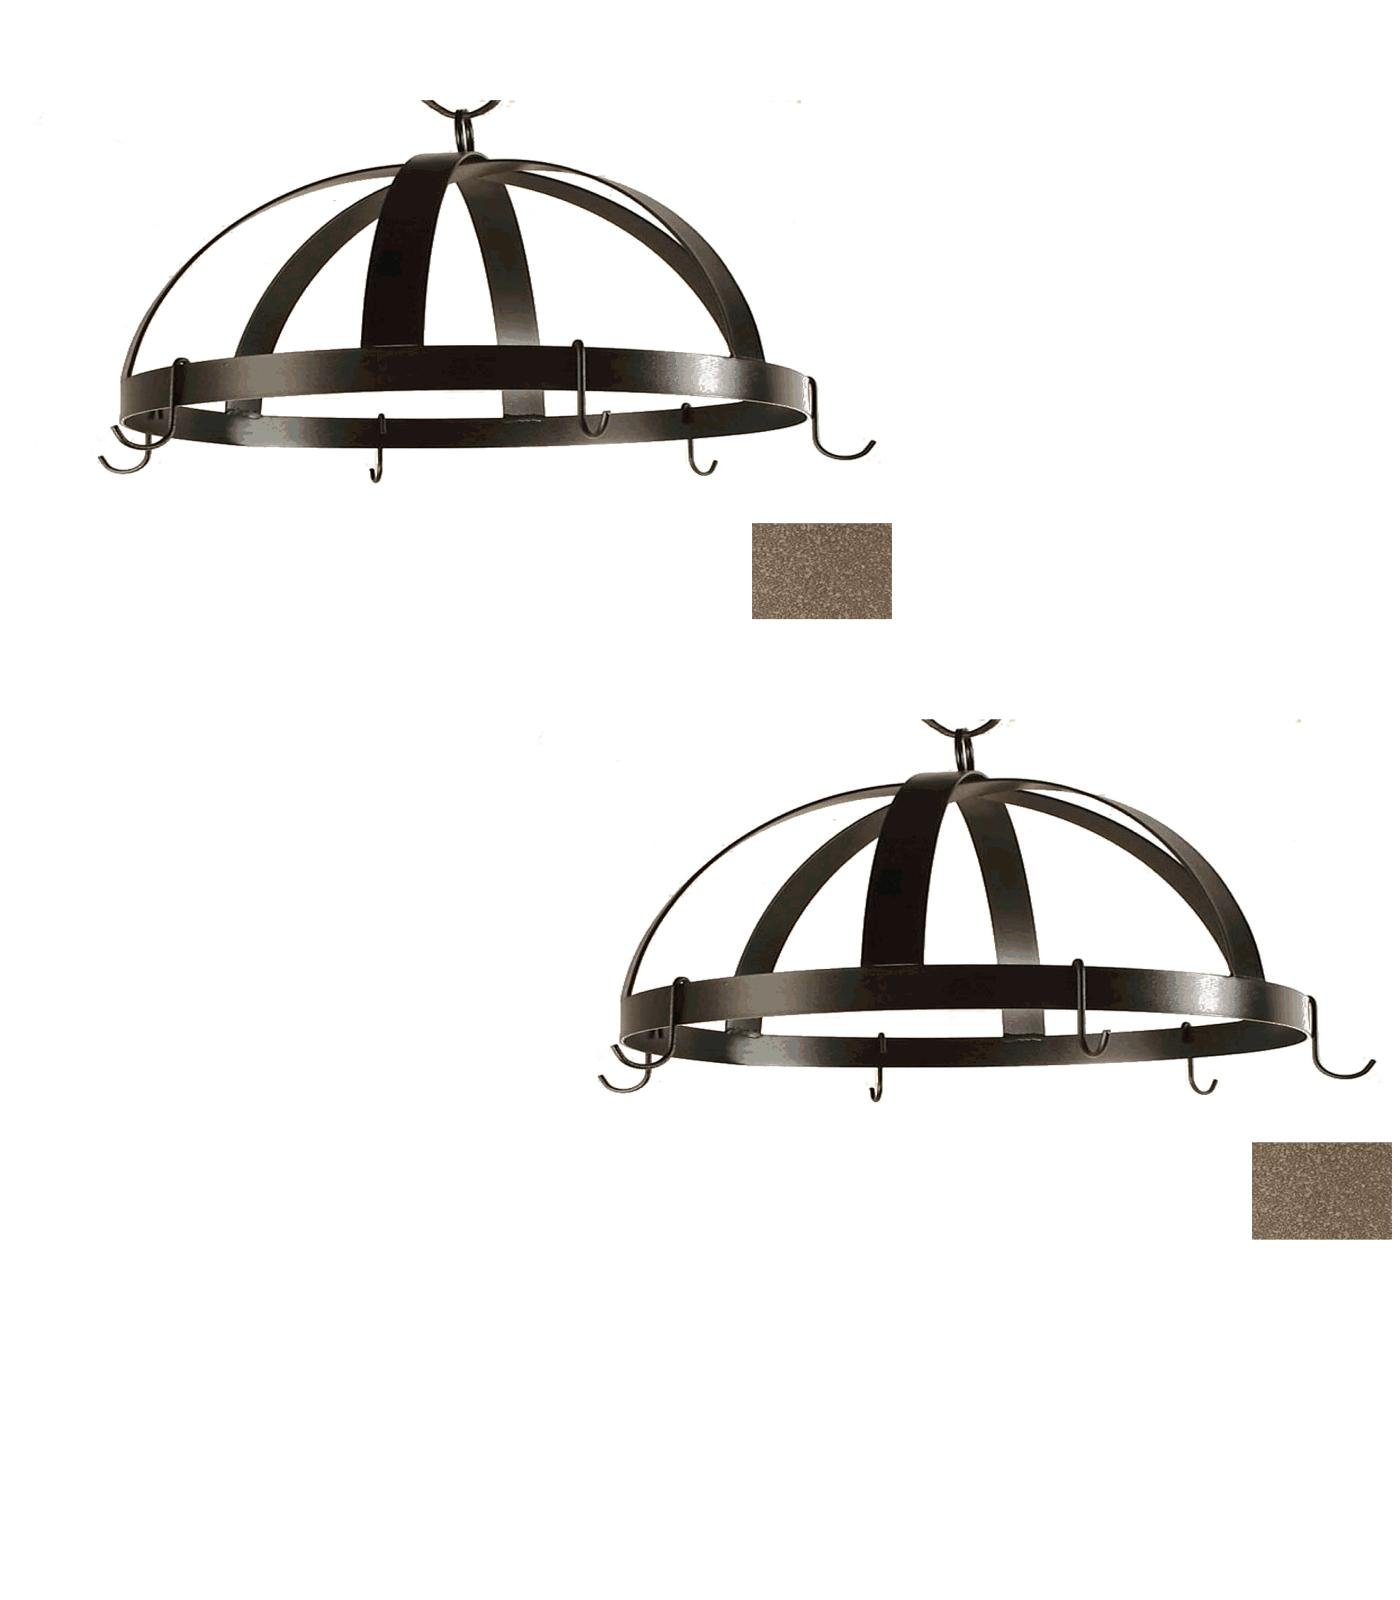 20-in x 20-in Burnished Copper Dome Pot Rack - Grace Collection Model - GMC-DPR-20-BC - Set of 2 Gift Bundle by Grace Collection